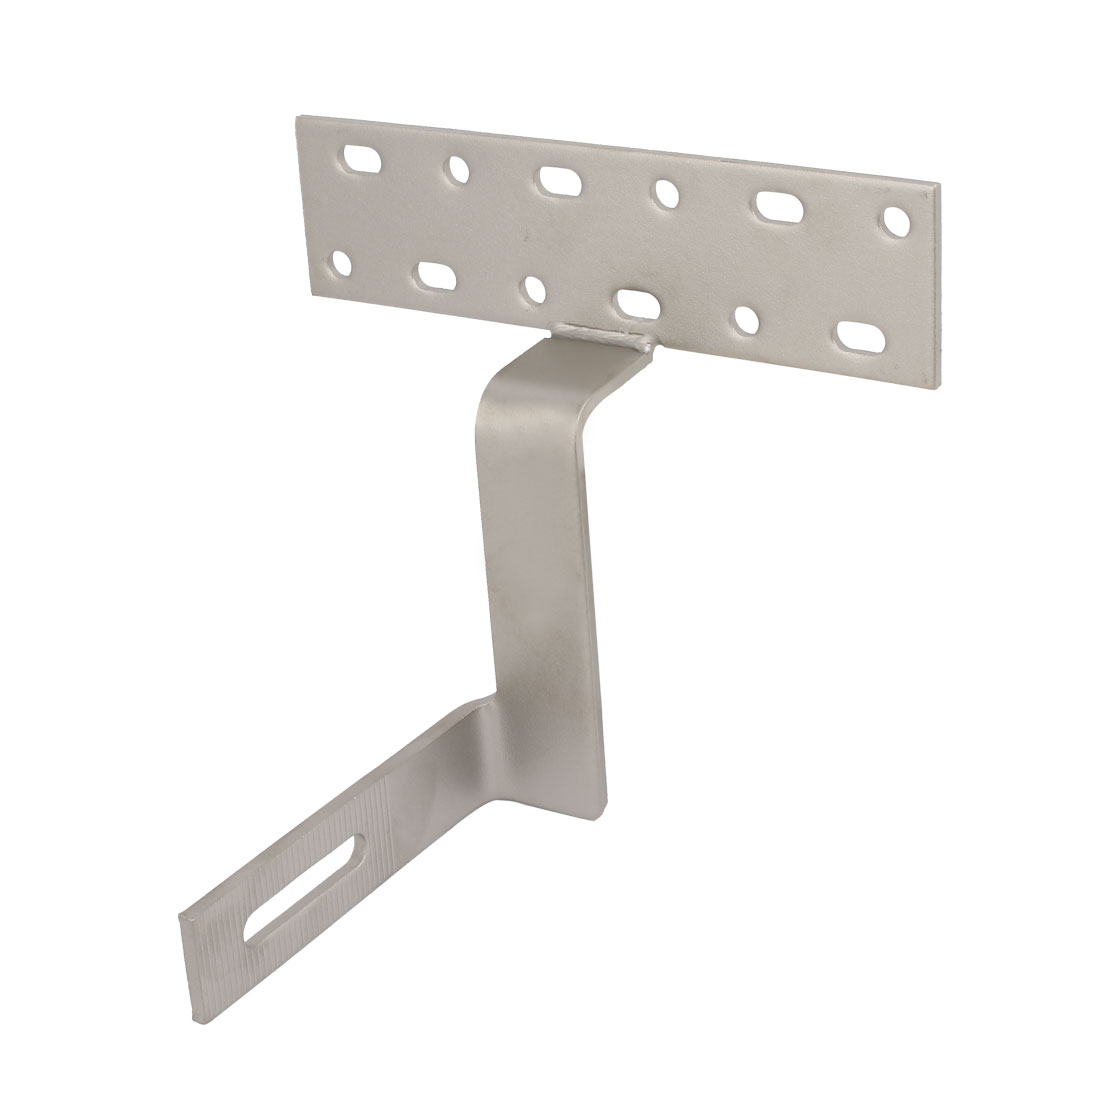 180mmx154mmx166mm 304 Stainless Steel Solar Panel Mounting Bracket Porcelain Tile Roof Hanger